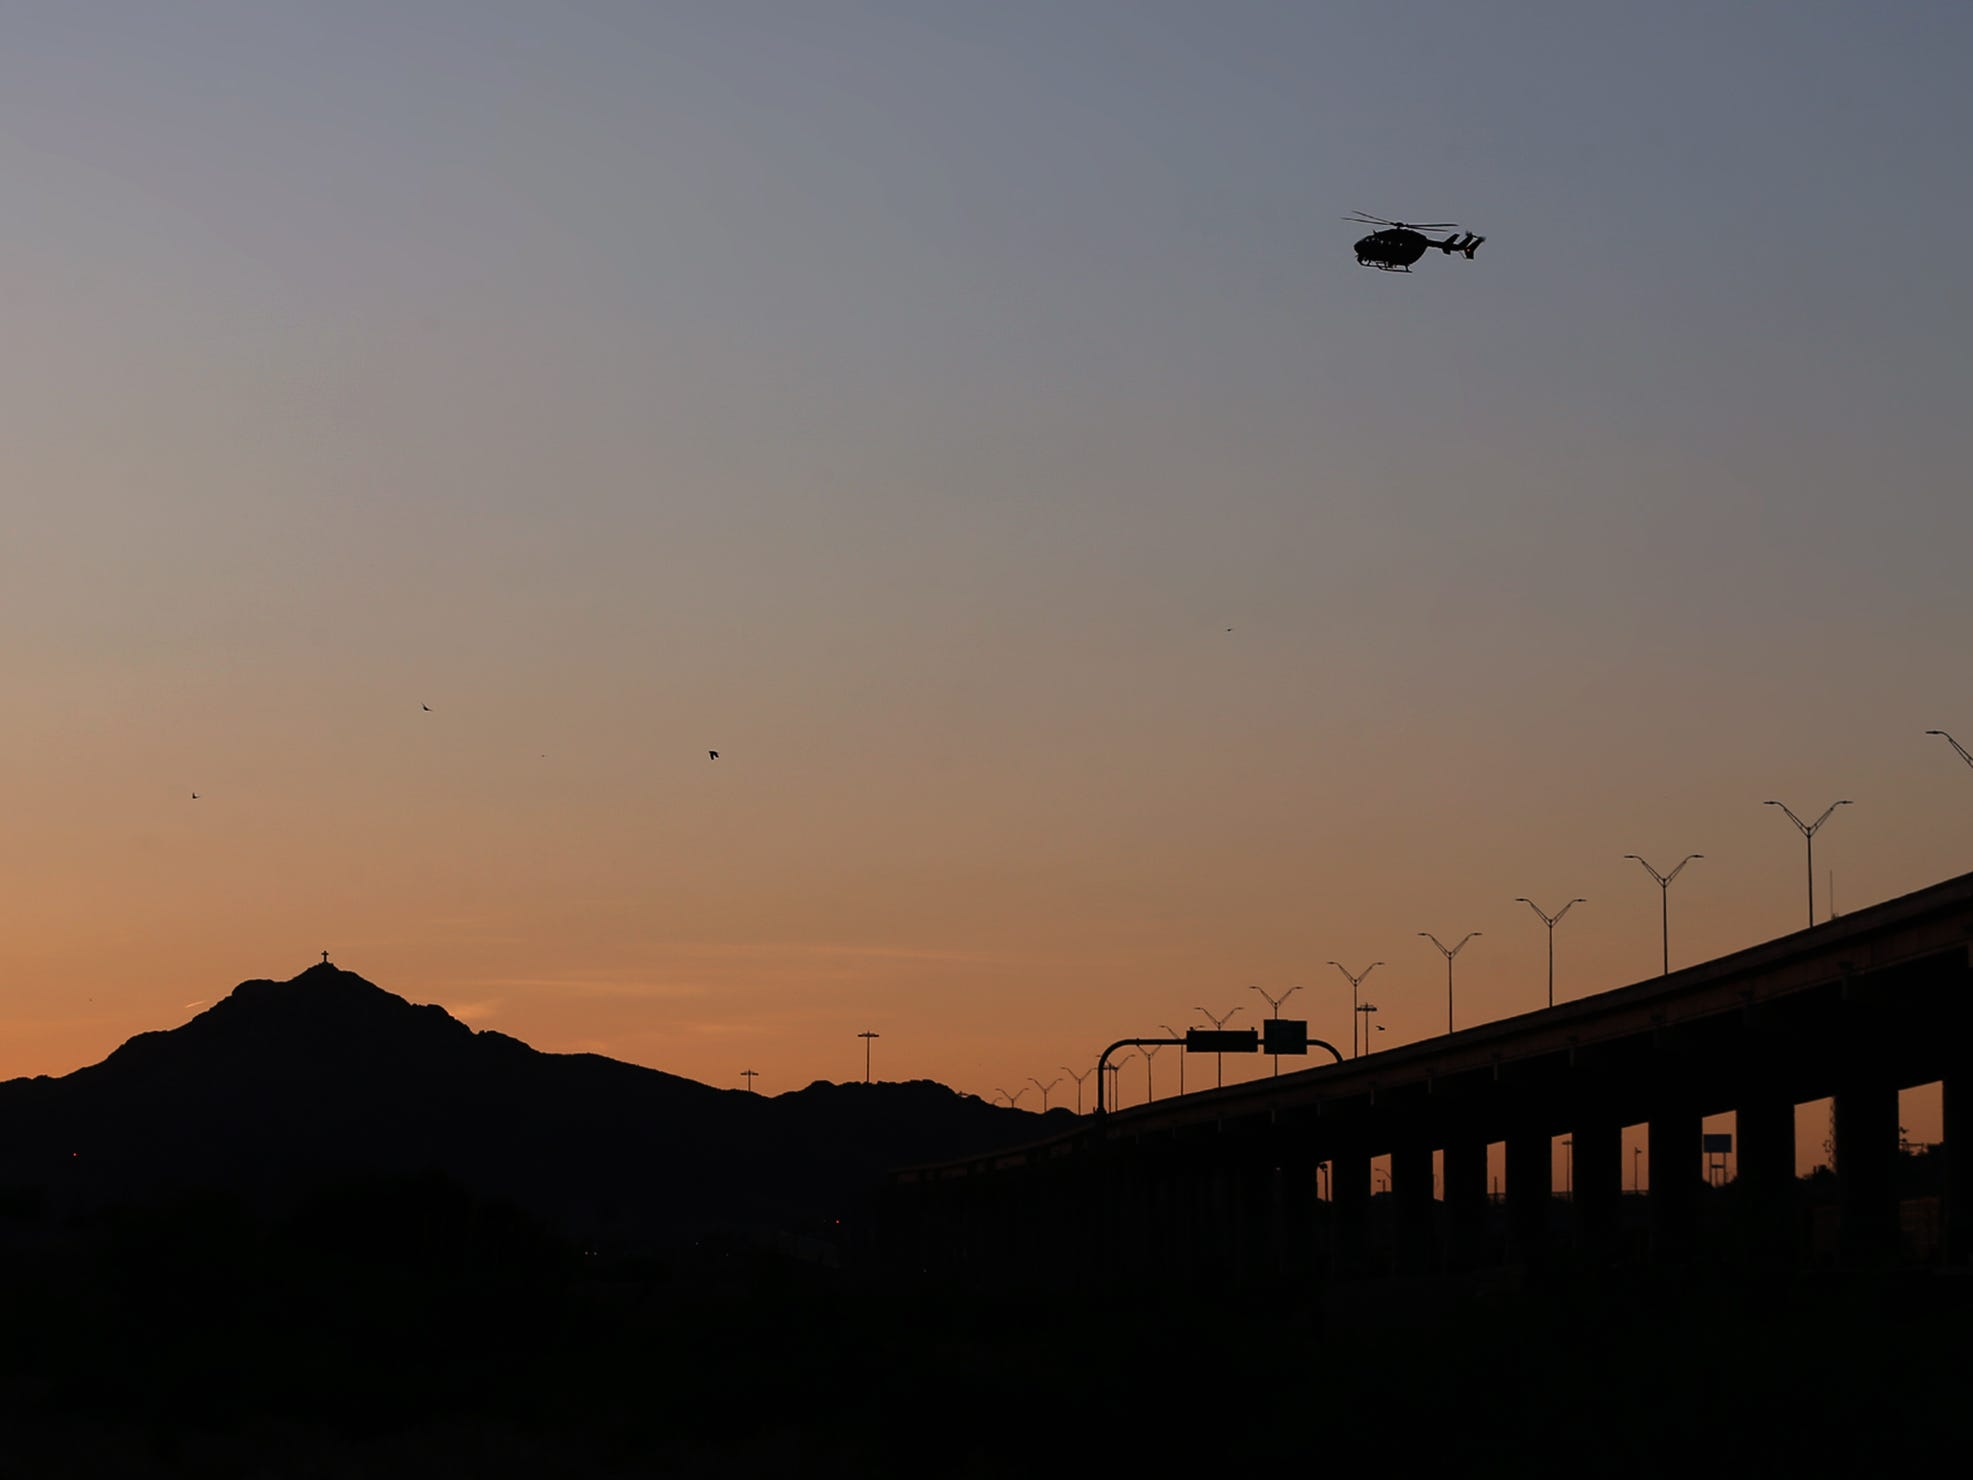 An ICE hellicopter patrols the border between downtown and Mount Cristo Rey as asylum seekers continue to flow across the border.